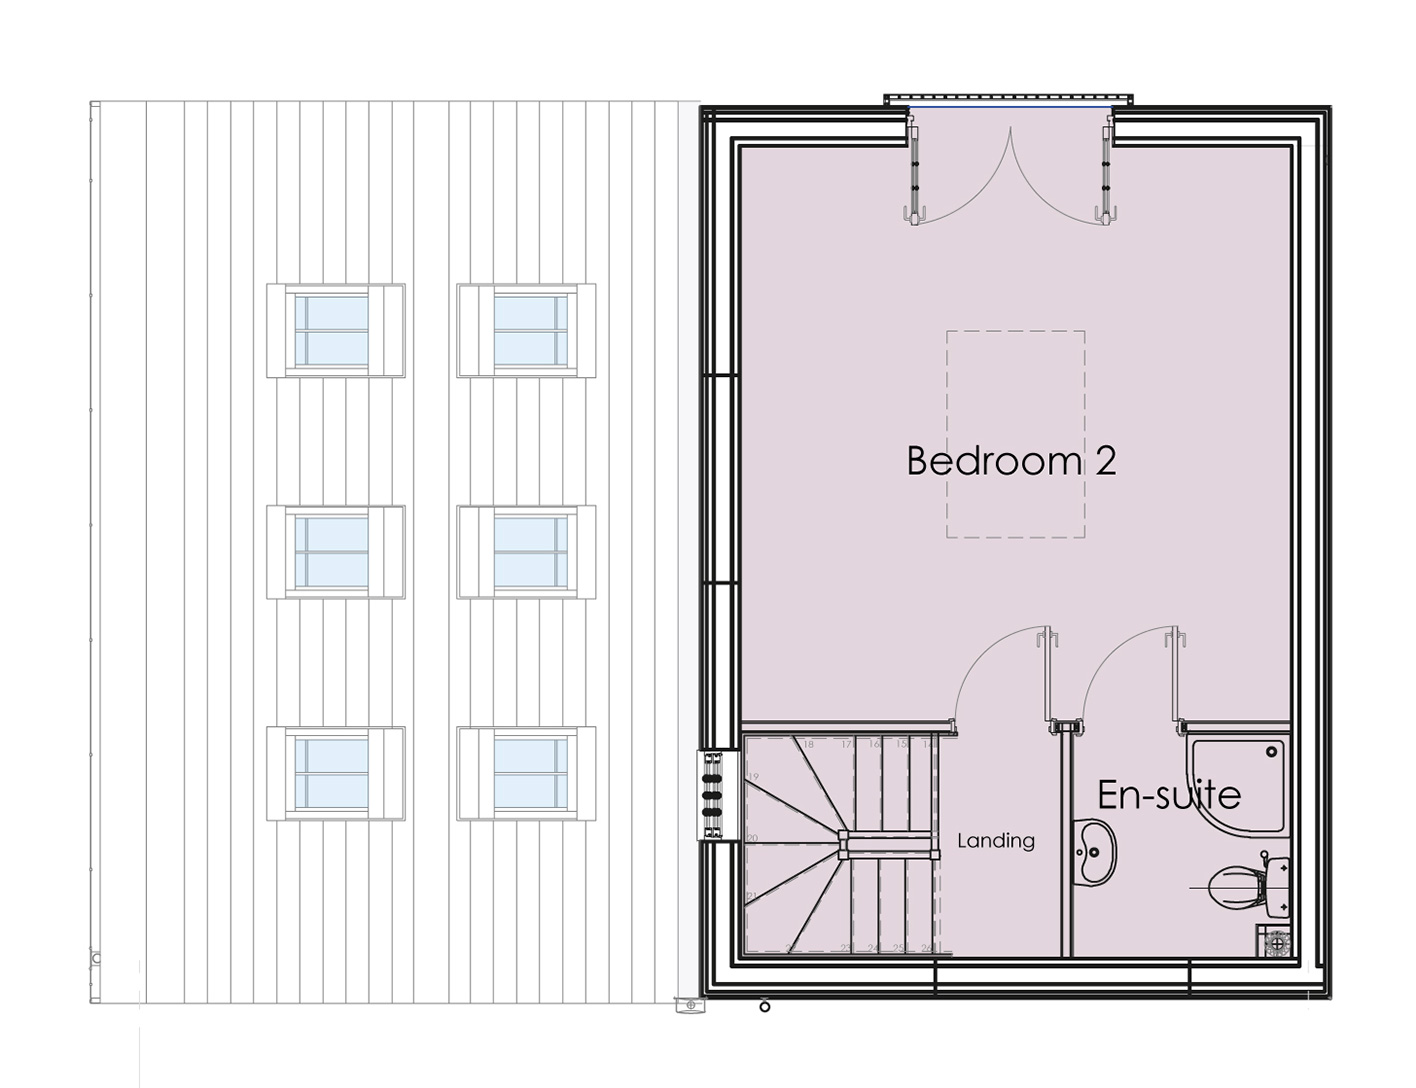 Second floor - click on plan to enlarge